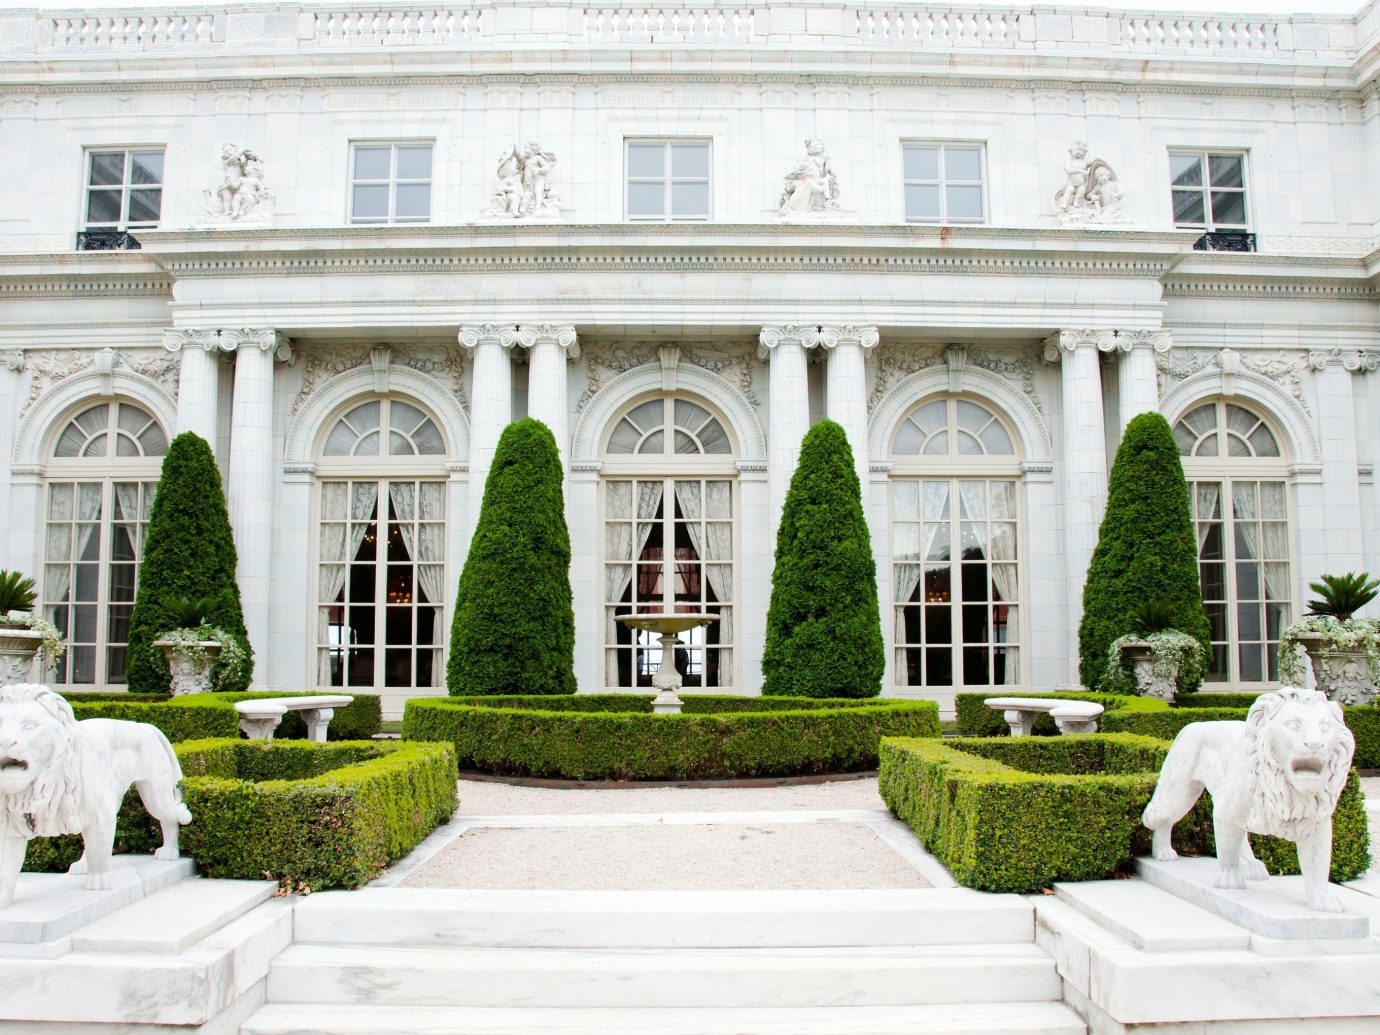 Trip Ideas outdoor building grass palace Architecture estate Courtyard stone mansion aisle white old statue older government building colonnade